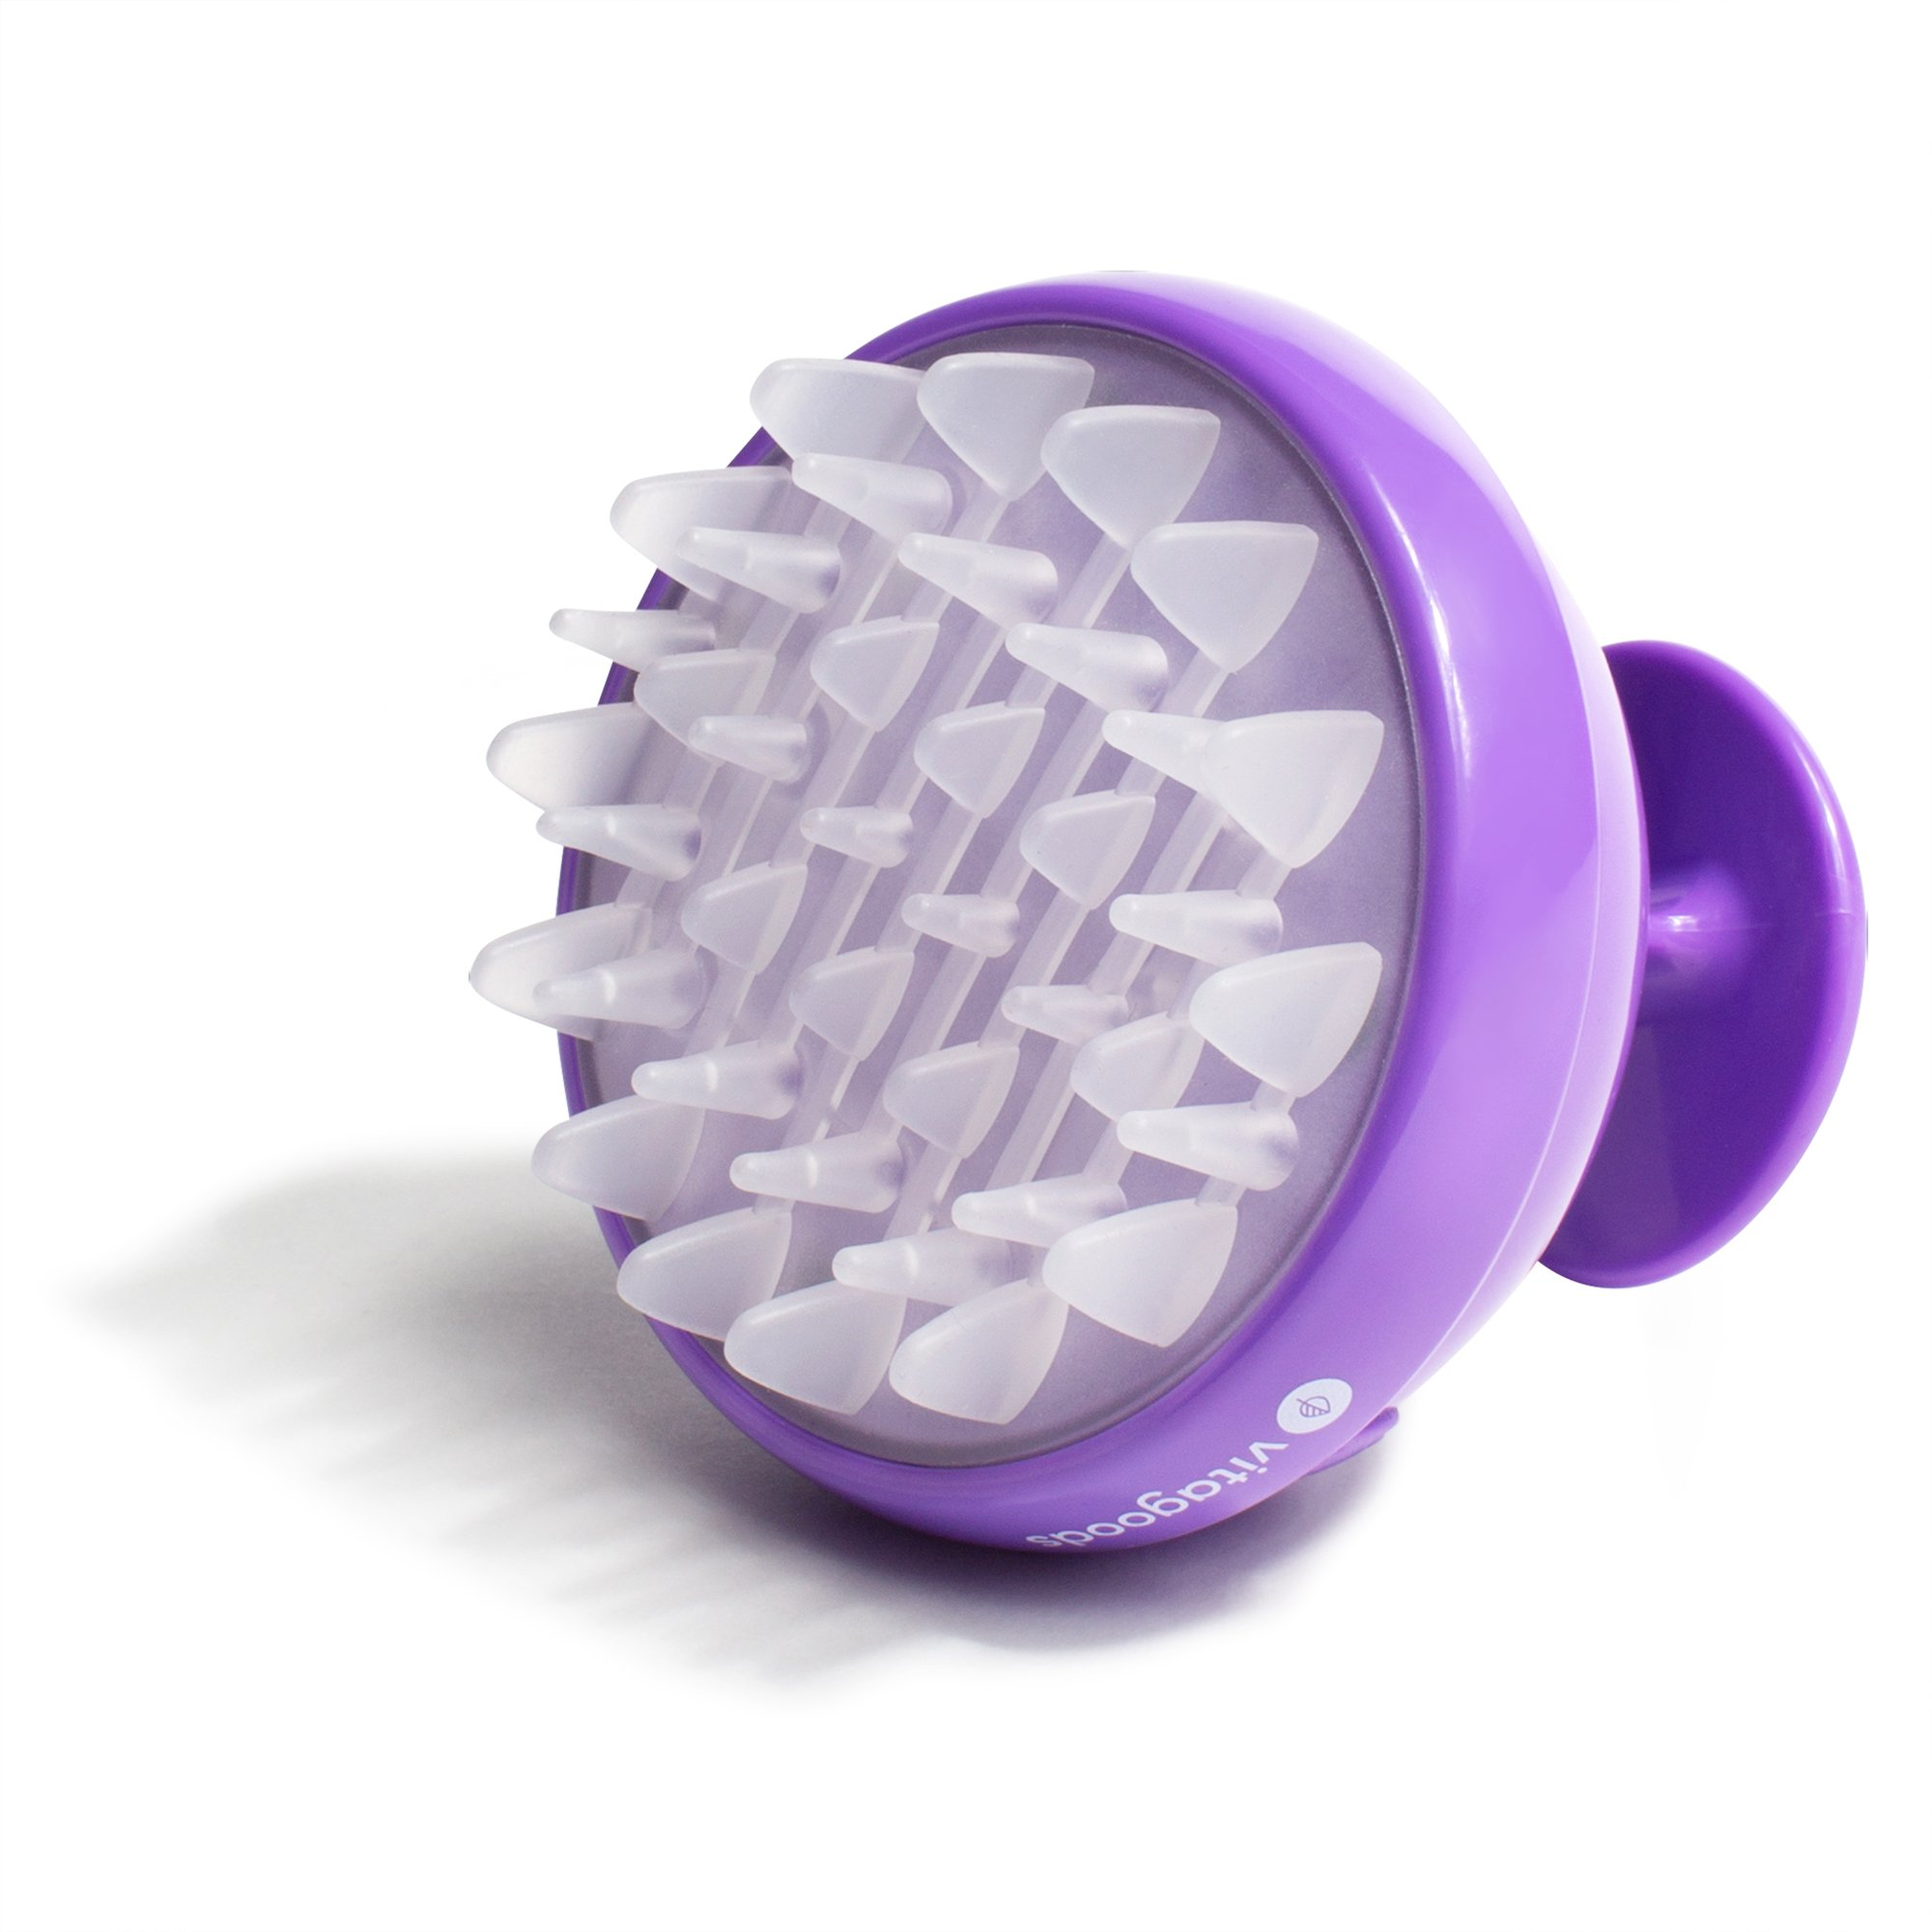 Vitagoods Scalp Massaging Shampoo Brush, Purple